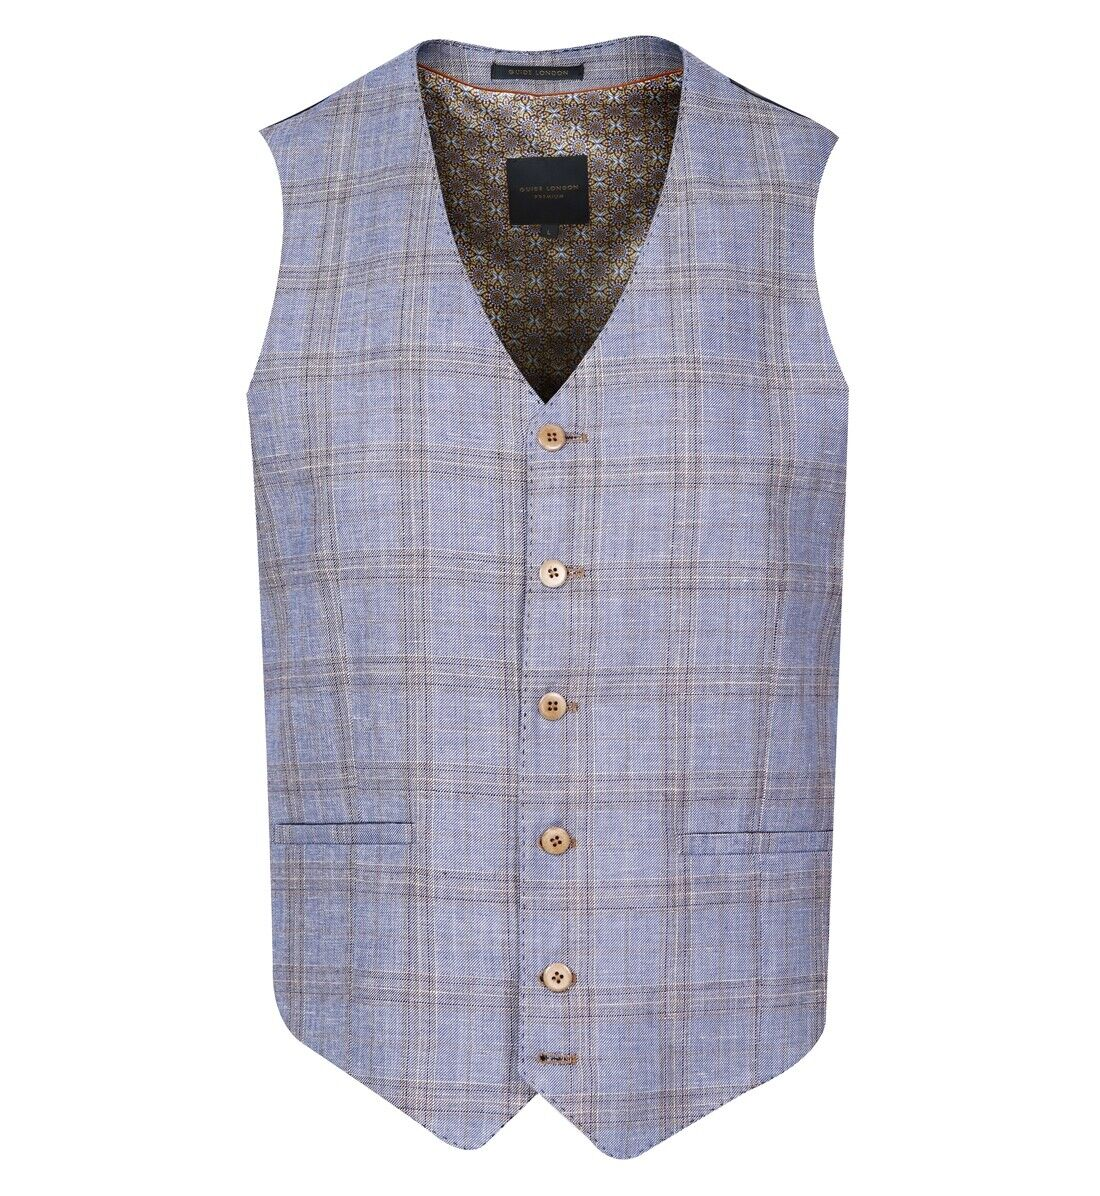 Guide London Blue Variegated Check Waistcoat - WC3354